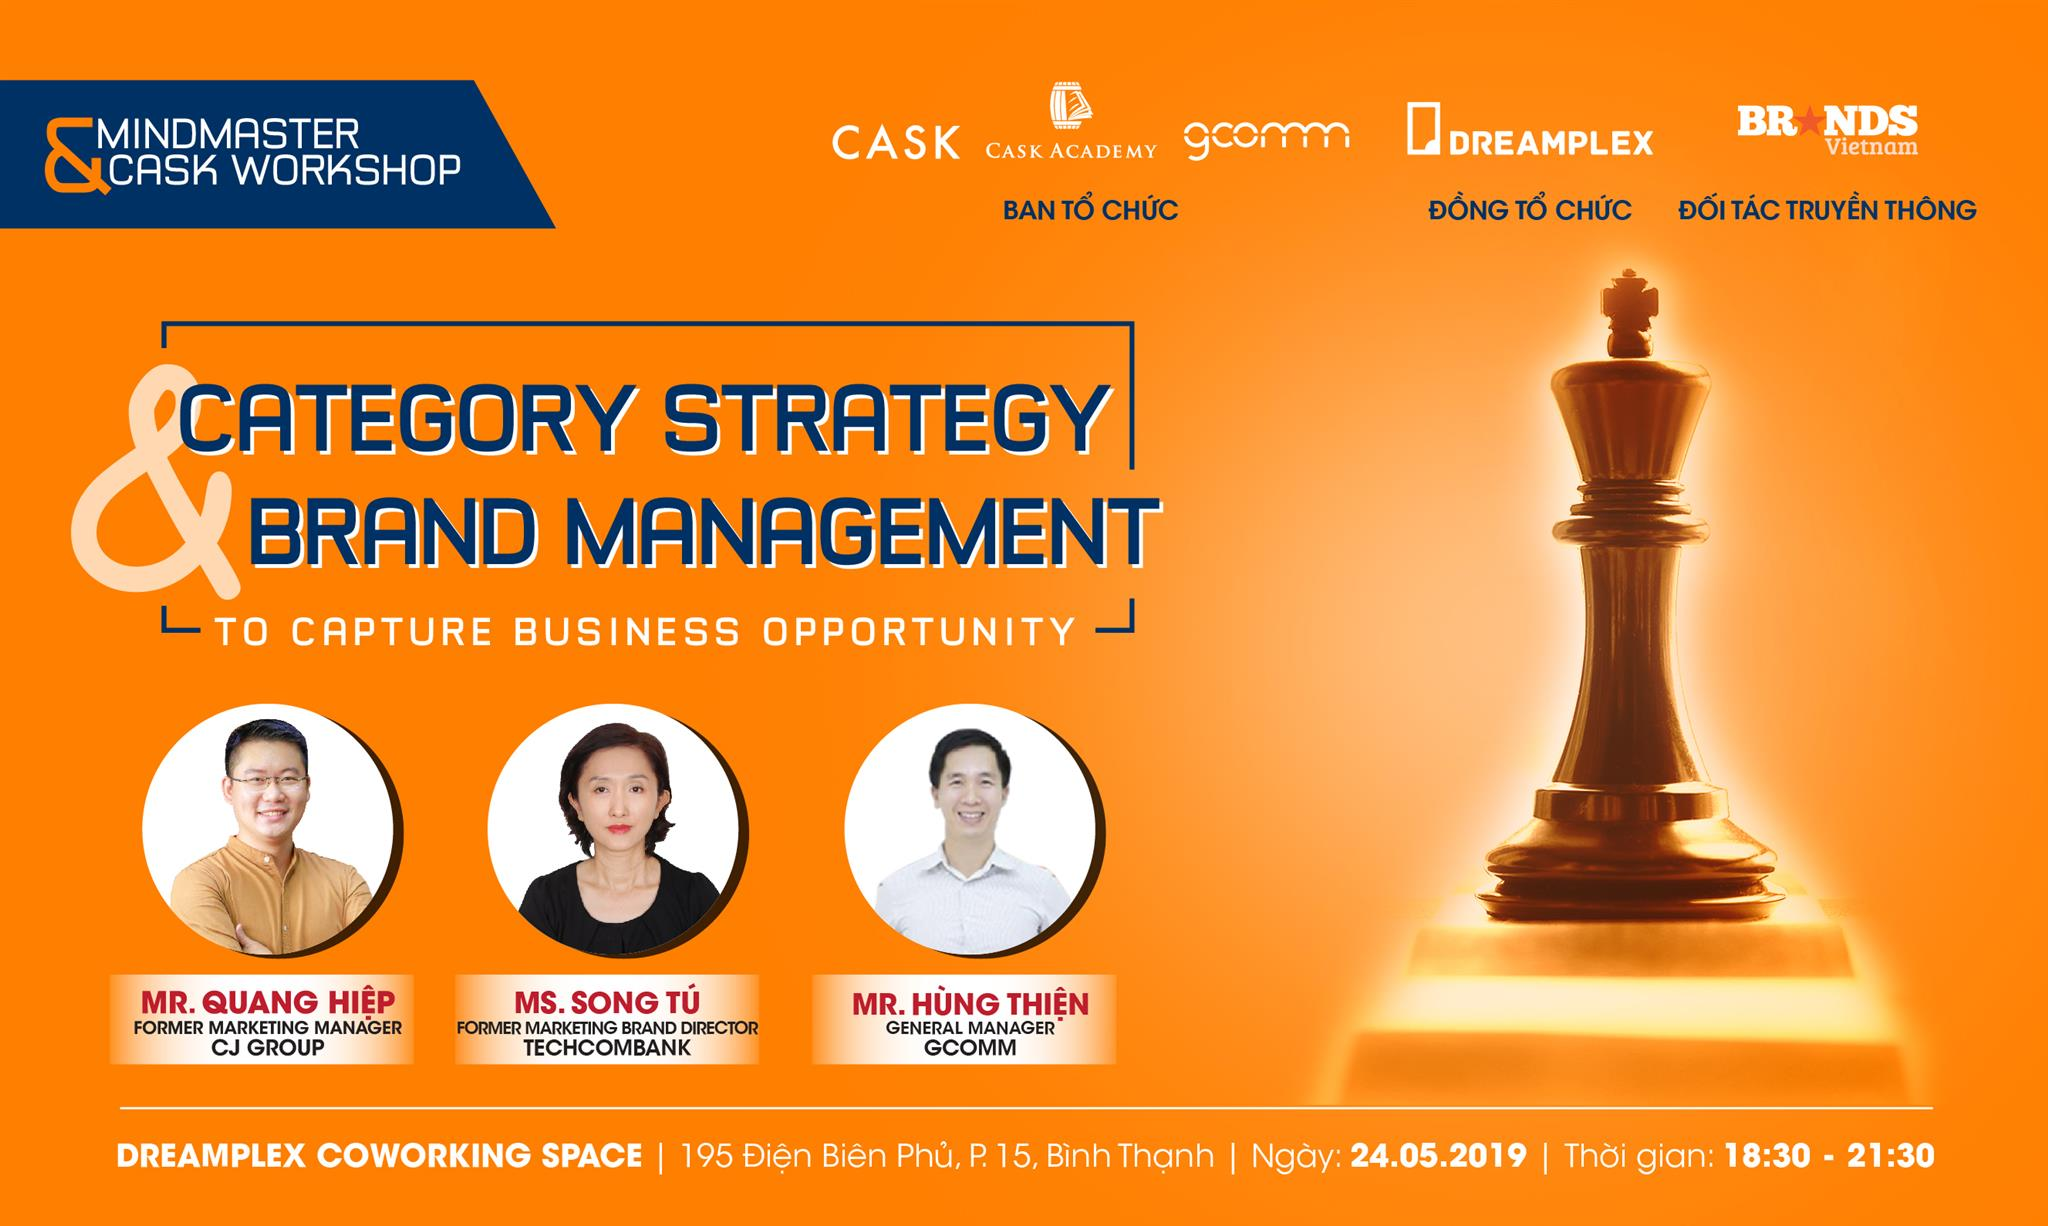 MINDMASTER & CASK SHARING : CATEGORY STRATEGY & BRAND MANAGEMENT